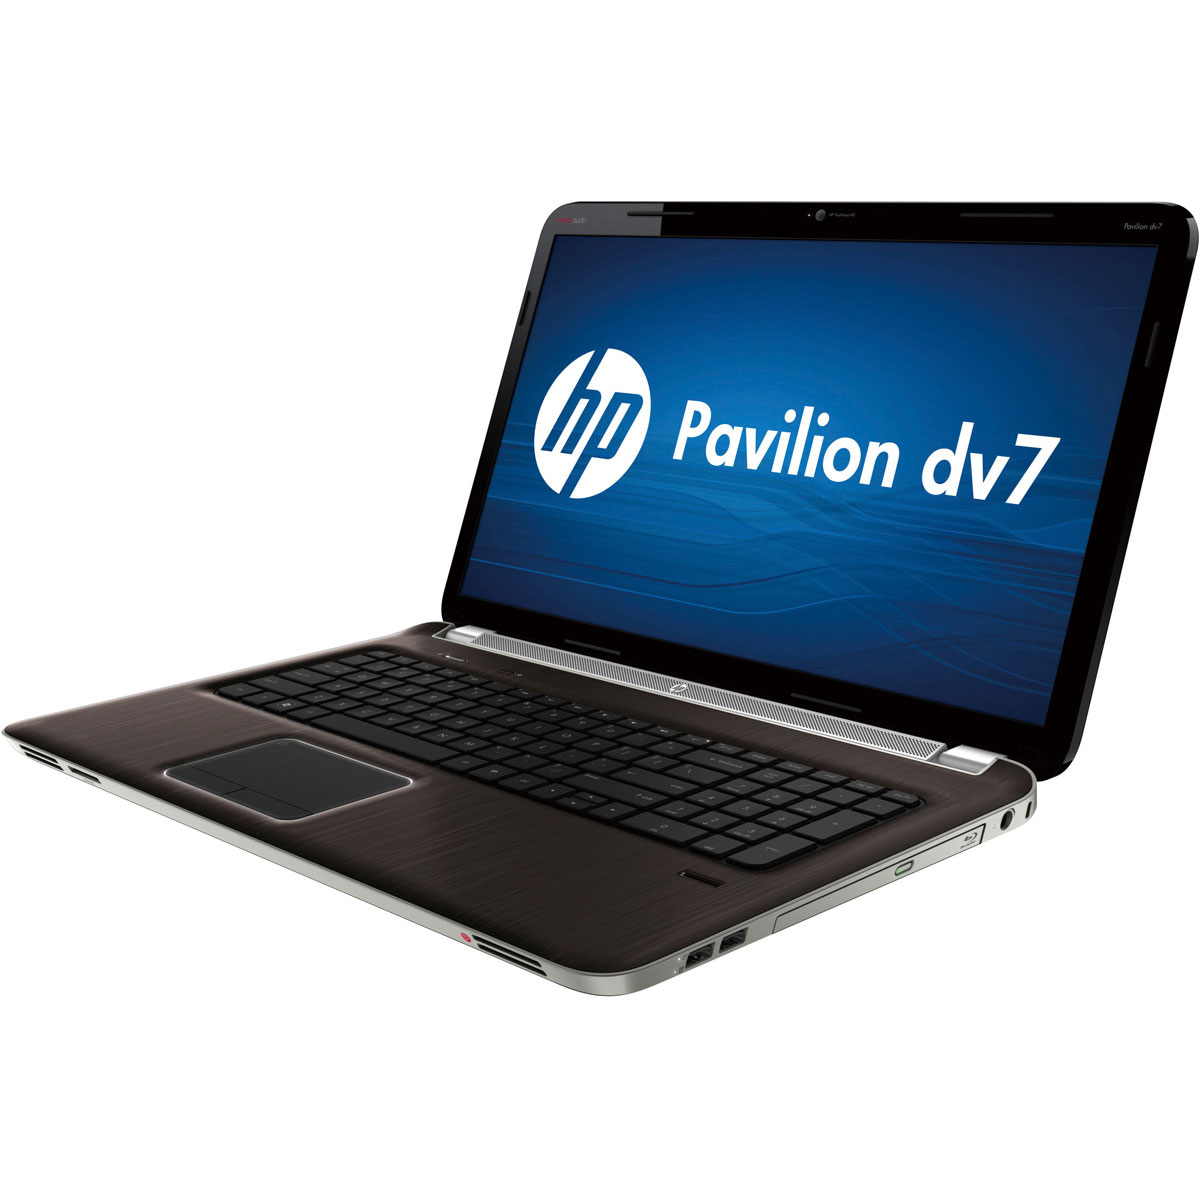 HP Pavilion Dv76c00tx Laptop Price in Pakistan